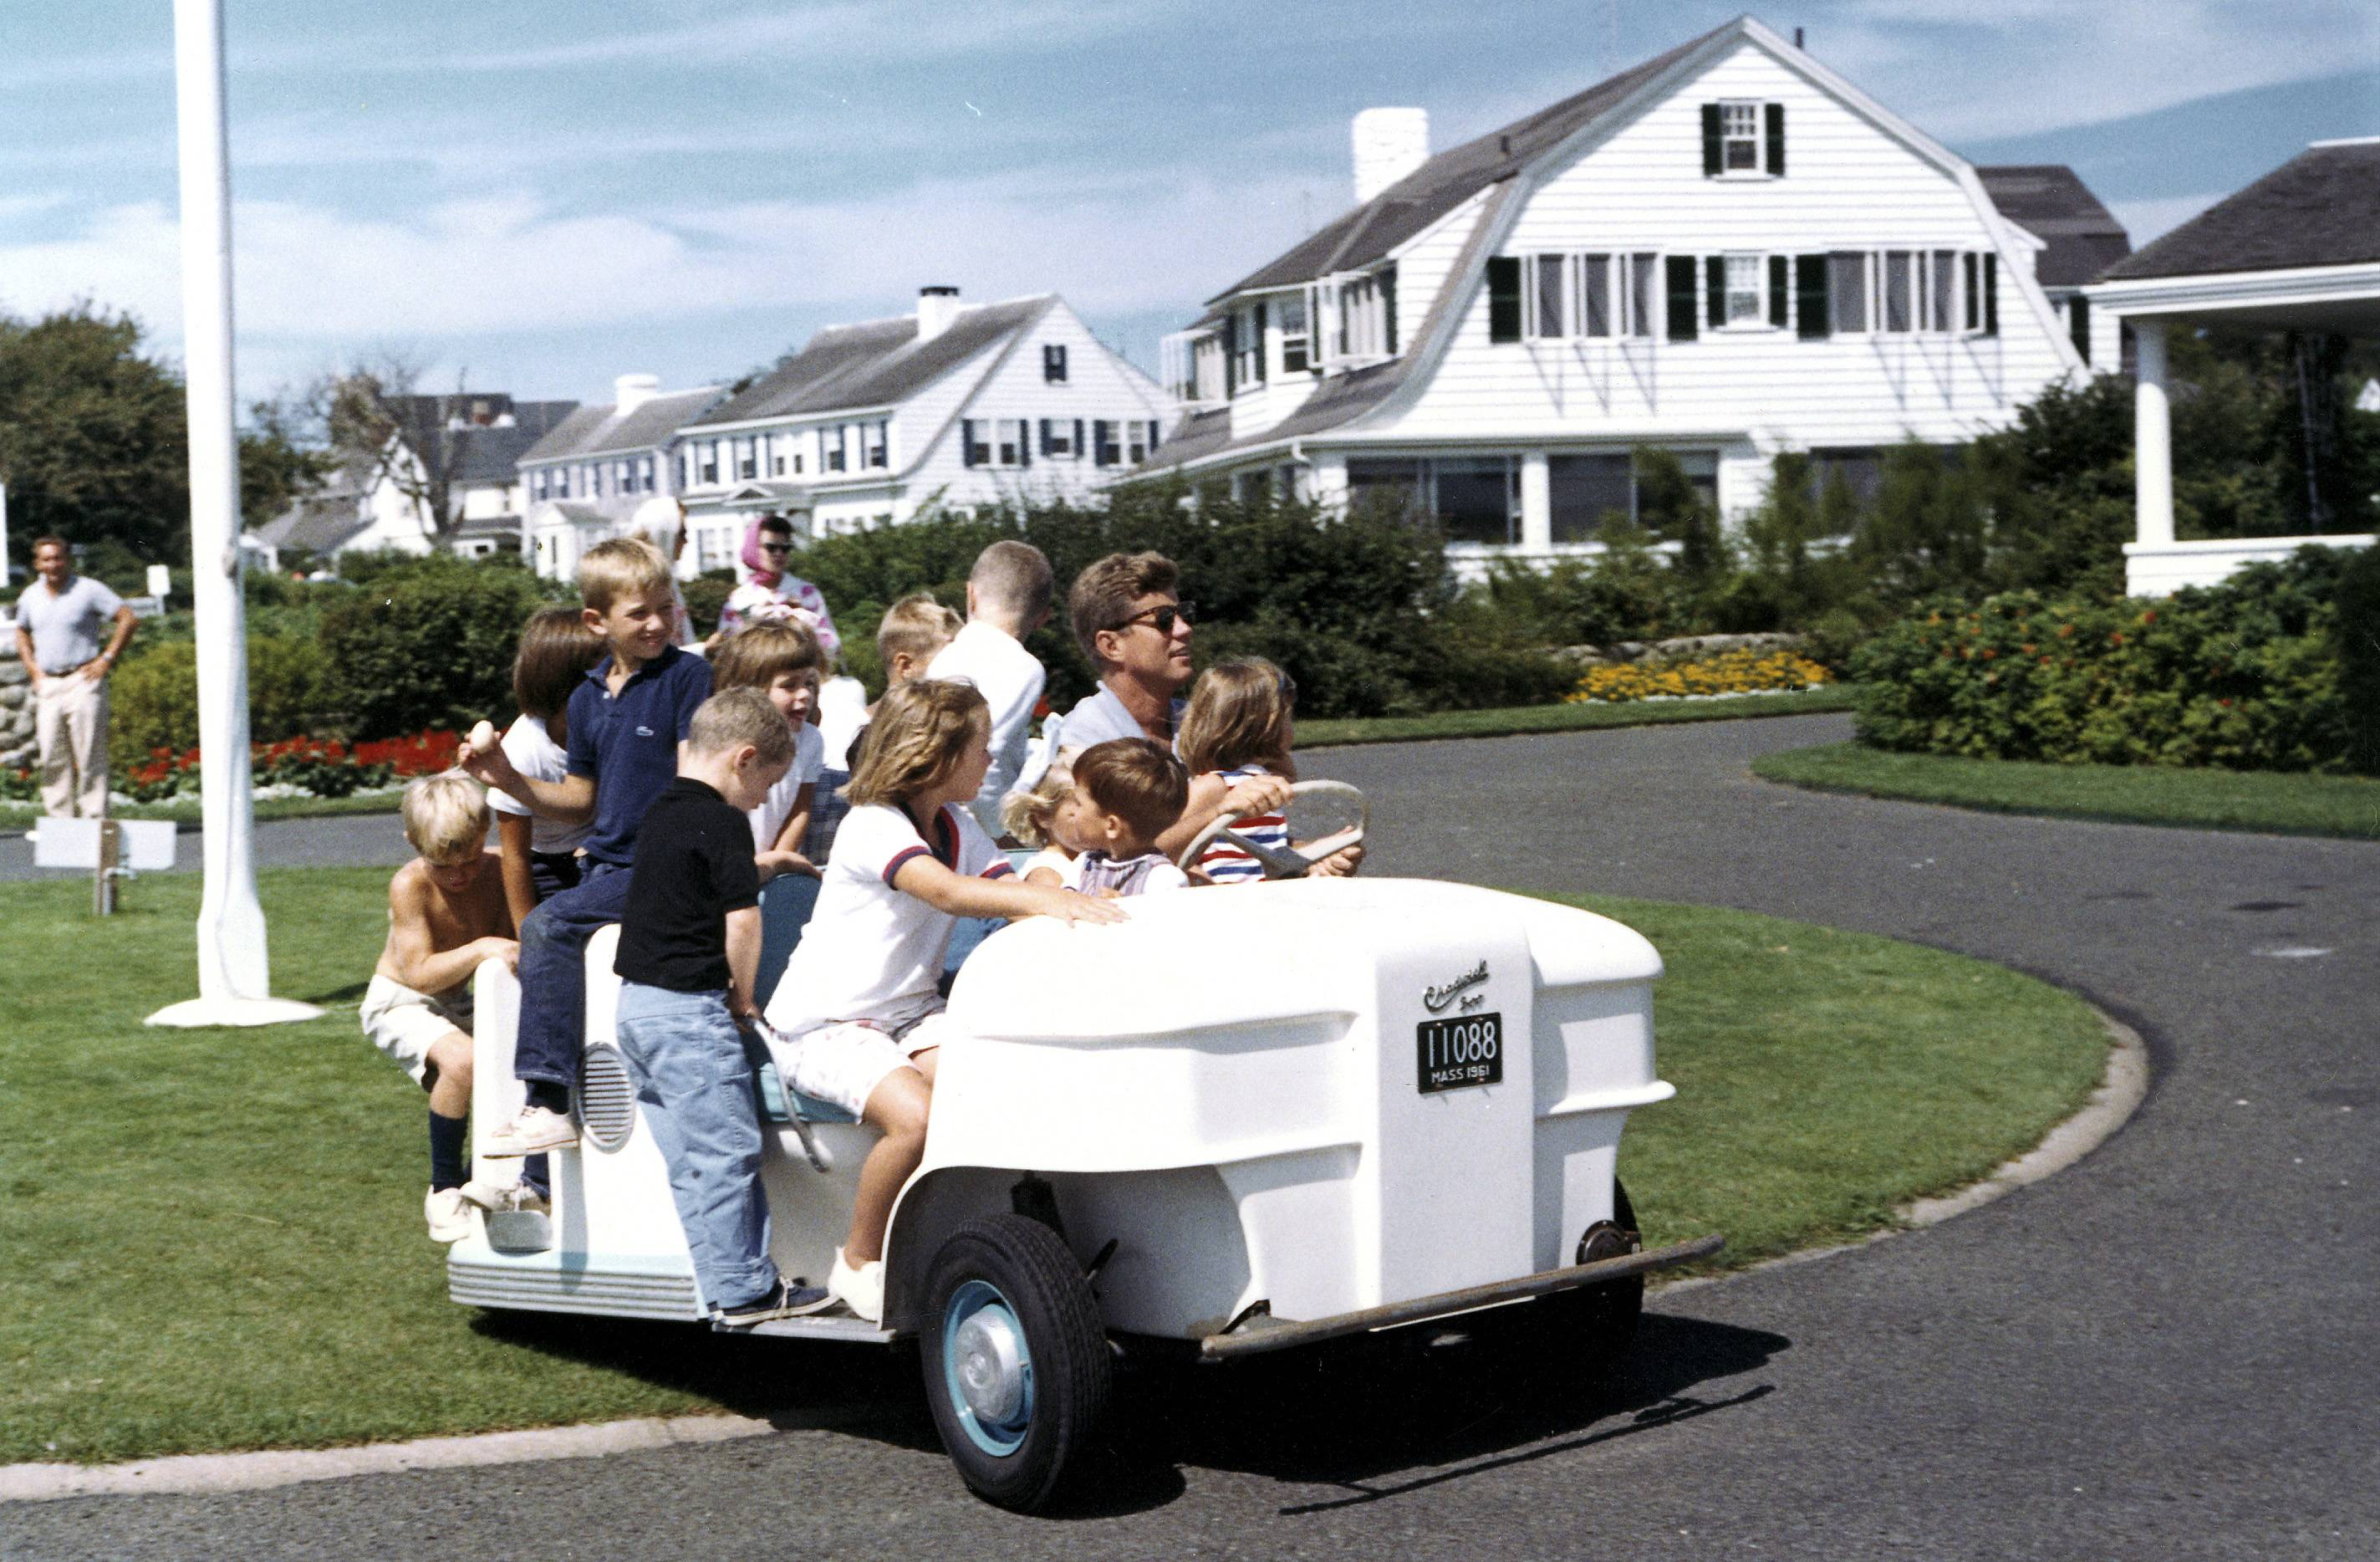 In this Sept. 3, 1962 photo, President Kennedy drives his nieces and nephews in a golf cart at the family home in Hyannis Port, Mass. The JFK Library opened a special exhibit Friday featuring some never-before displayed artifacts from the Kennedy family's summers on Cape Cod, including the golf cart.